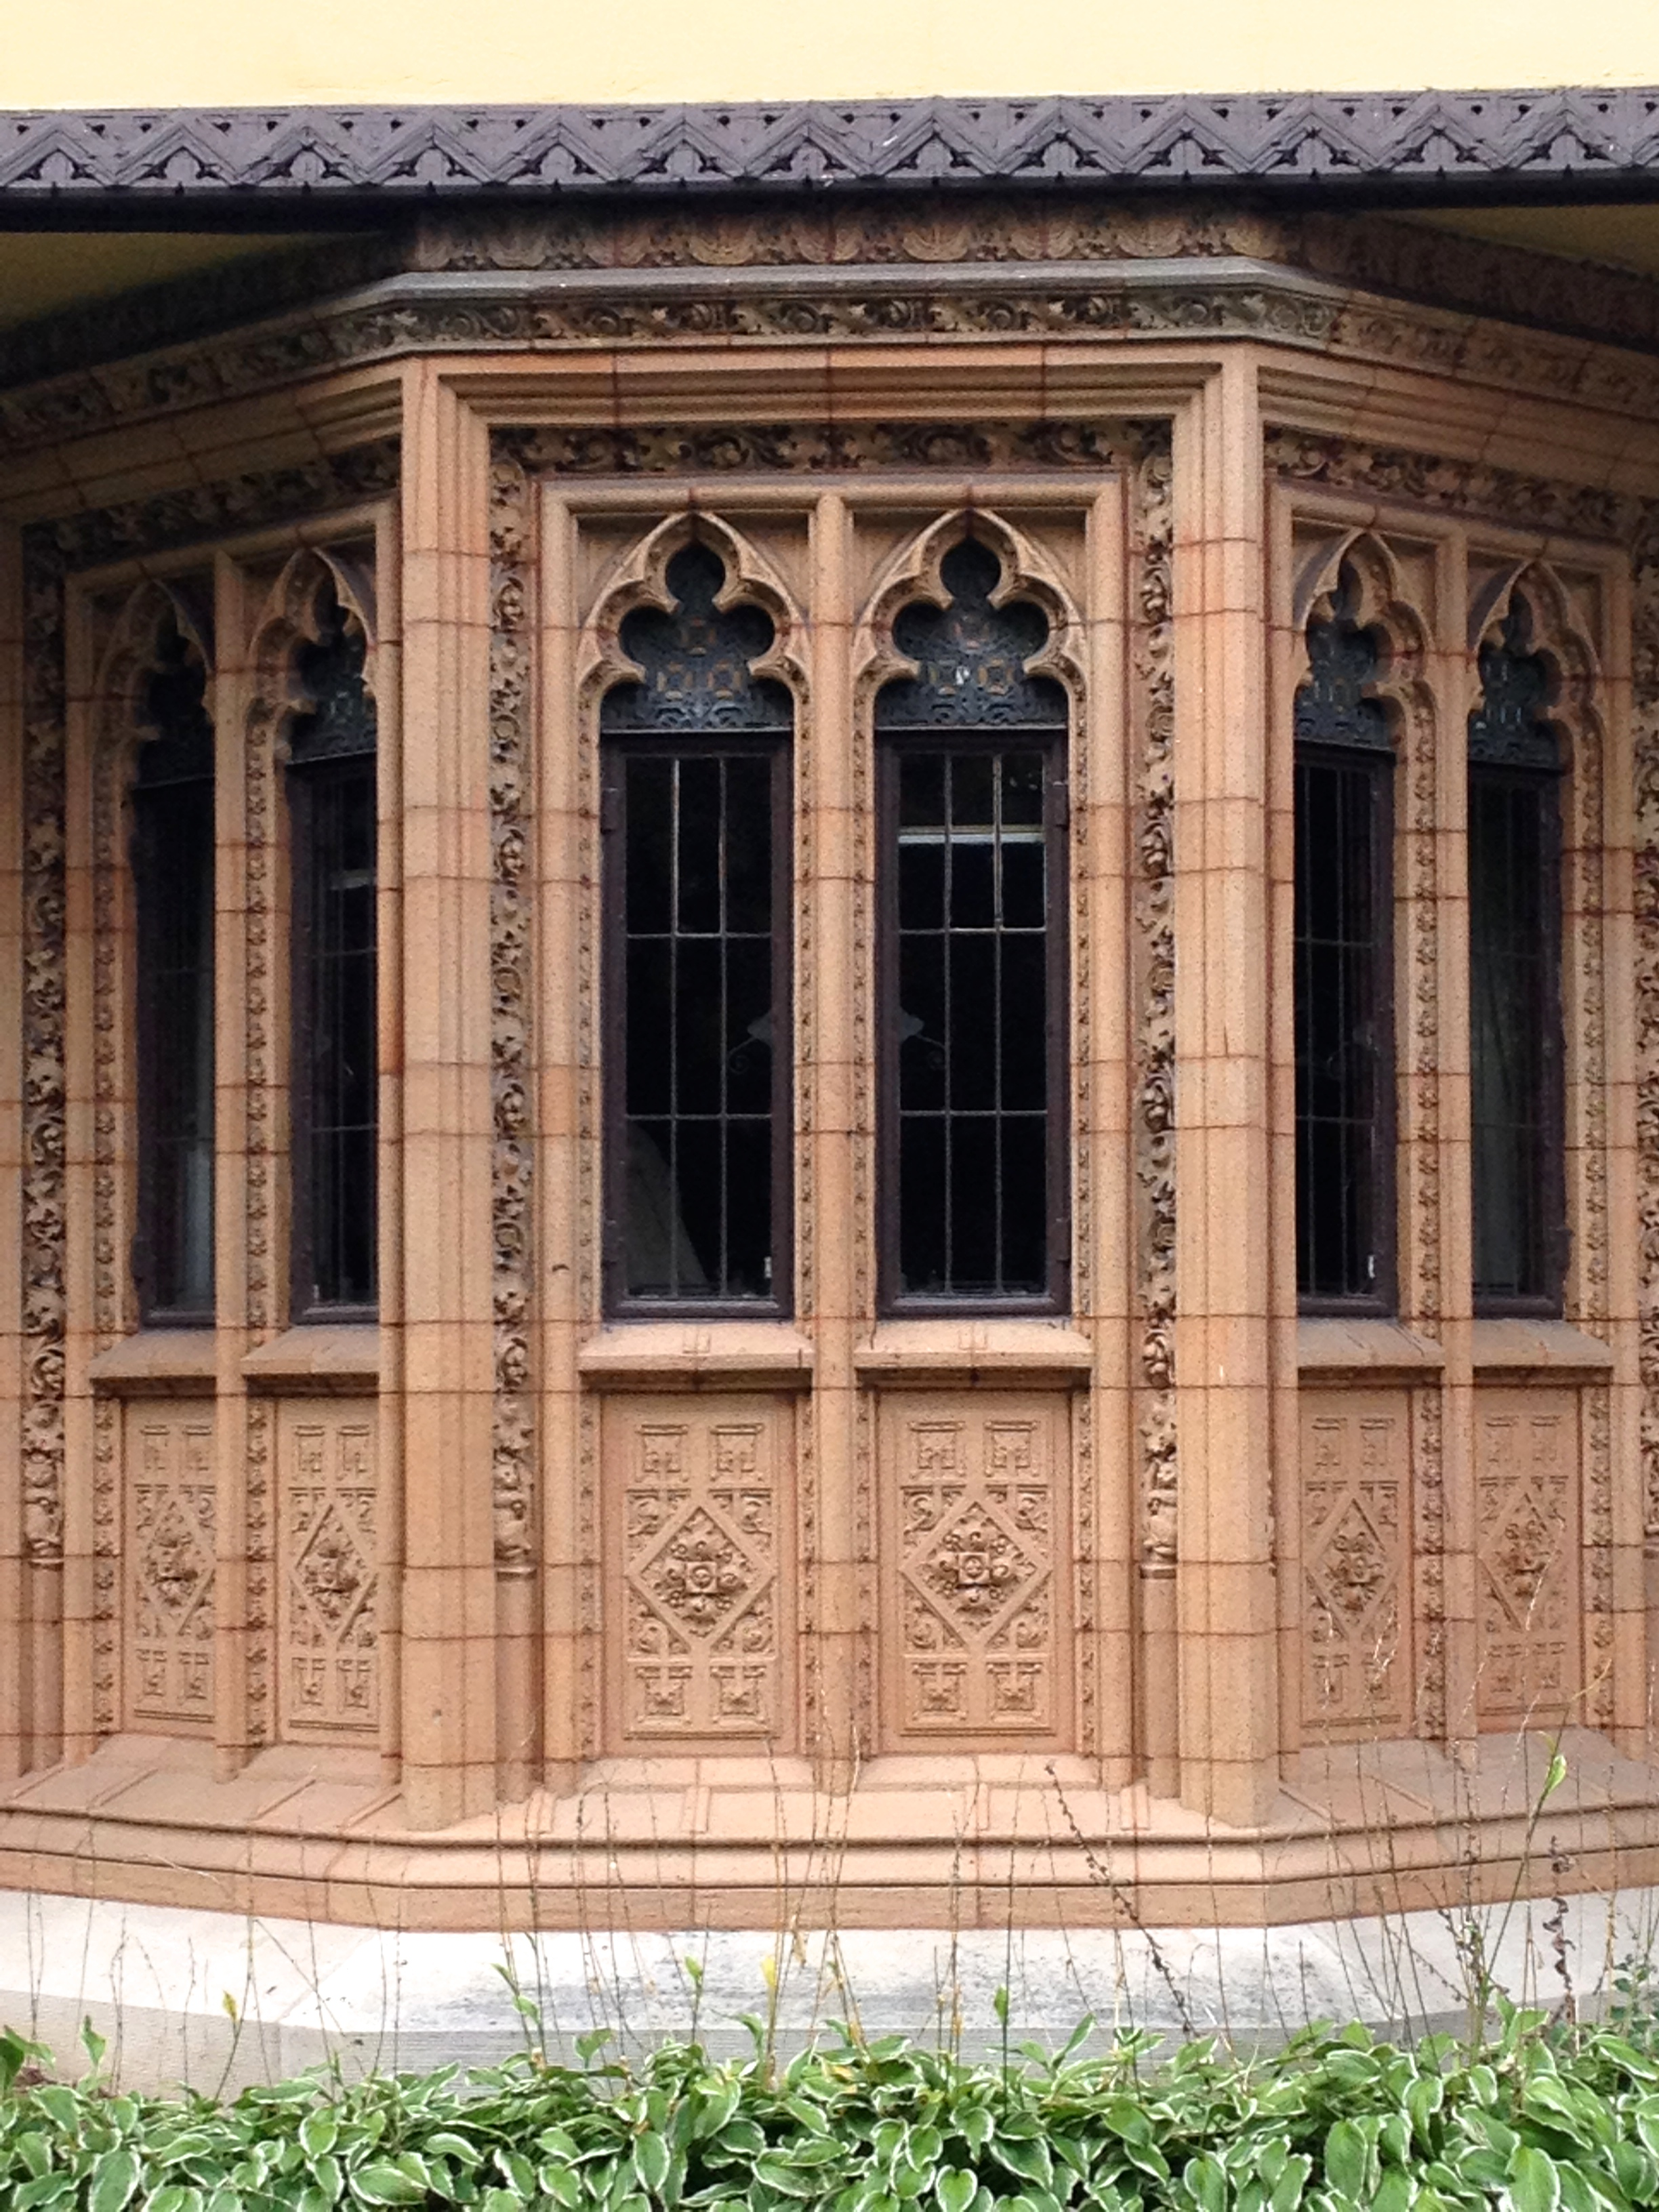 Never thought I'd see gothic arch windows on a Frank House. But he did it!